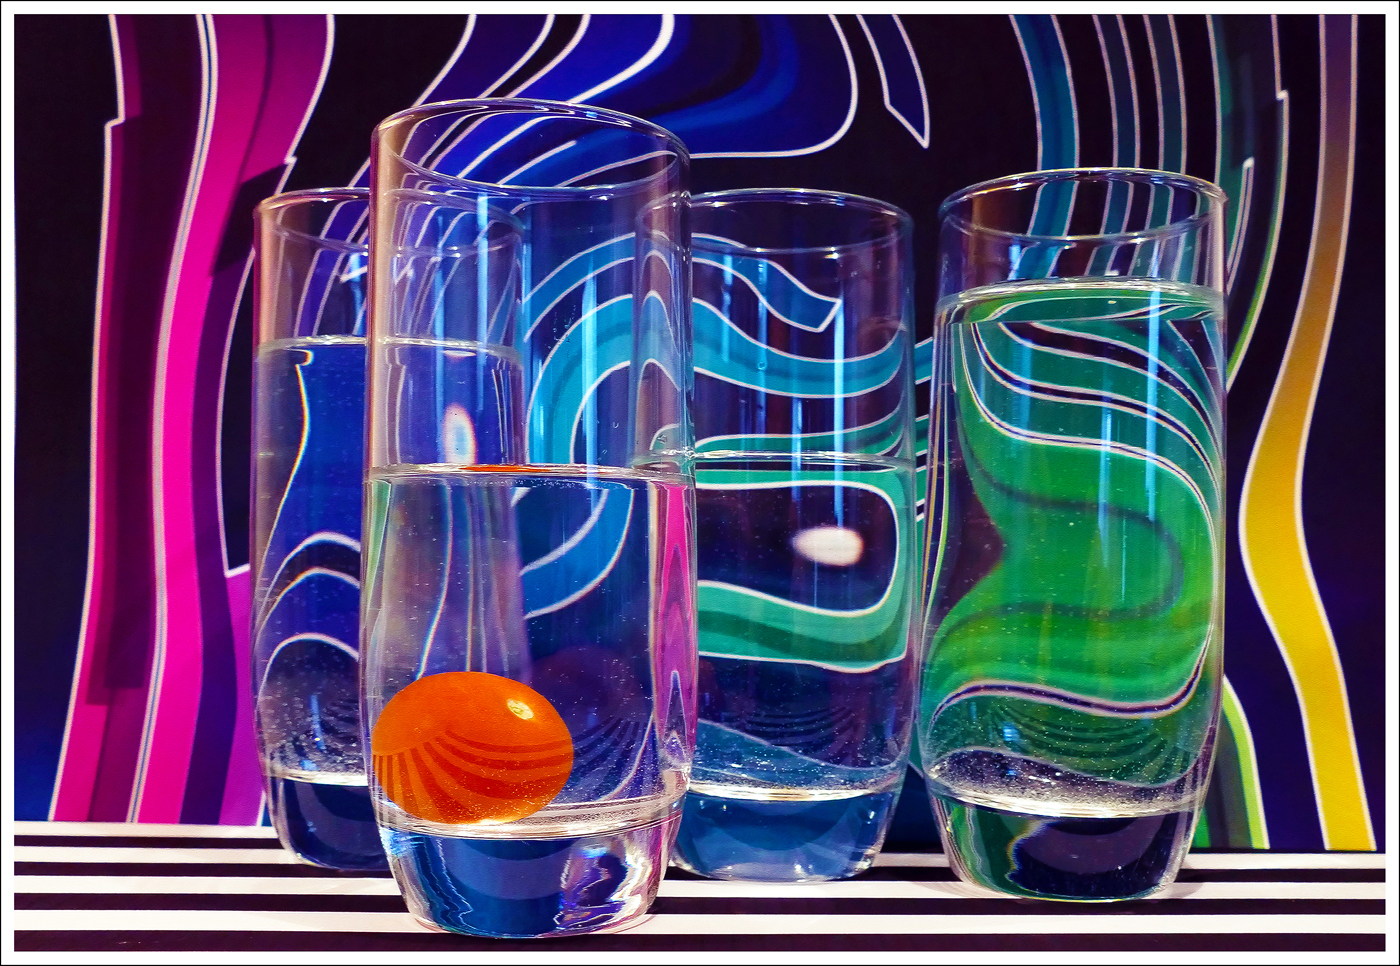 Advanced Projected Images - HC - Tomato Juice Anyone? by Lawrence Graham (October 2015)